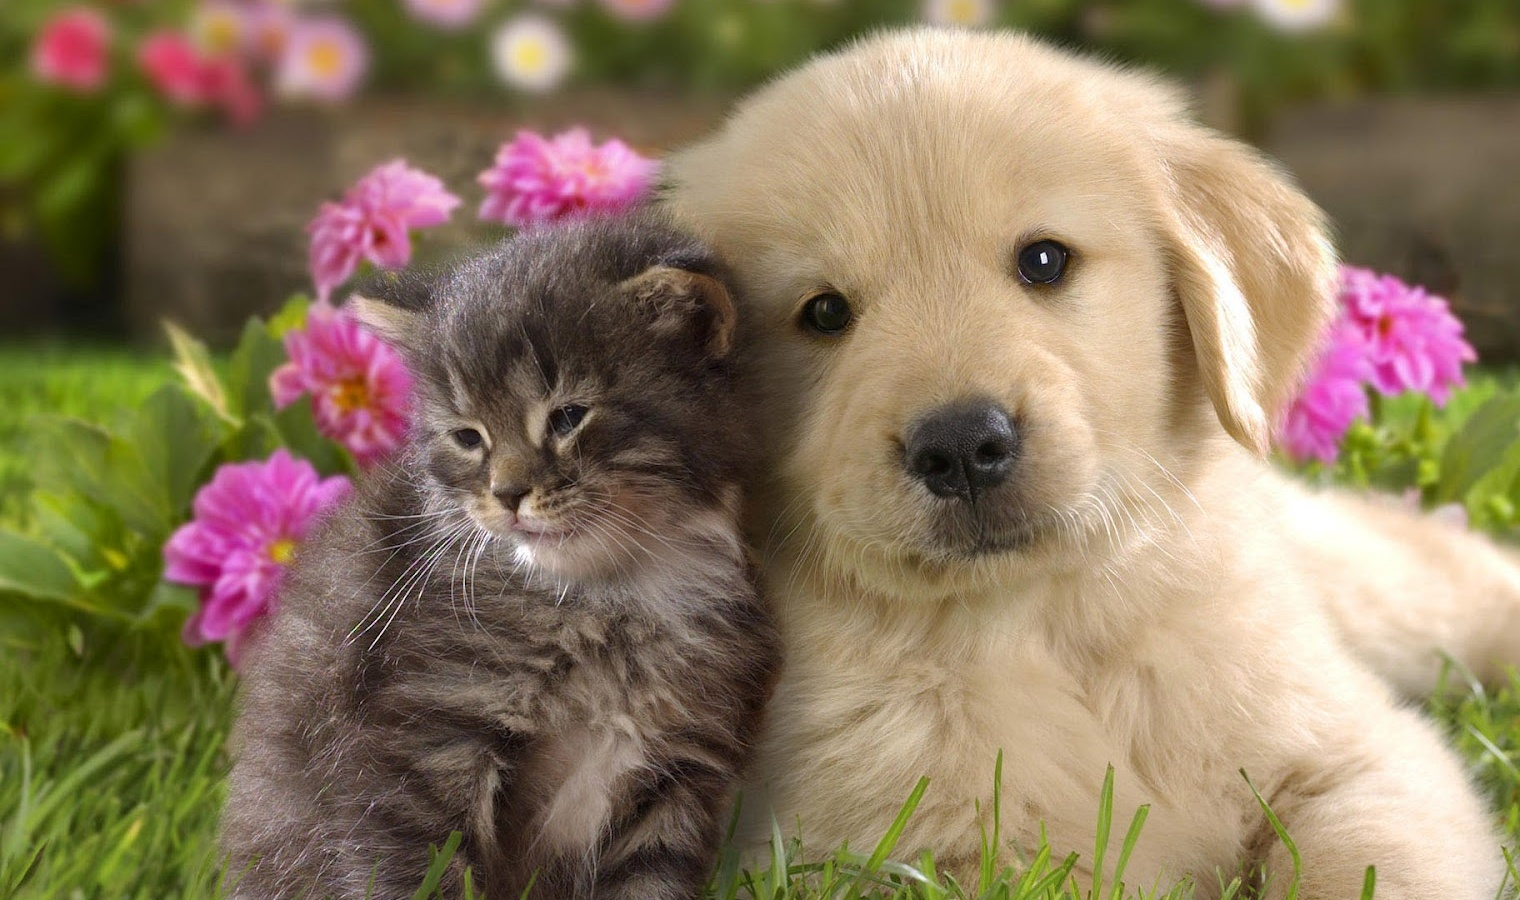 Animal Cute Cat And Dog Cuddling Cats Dogs HD Wallpaper